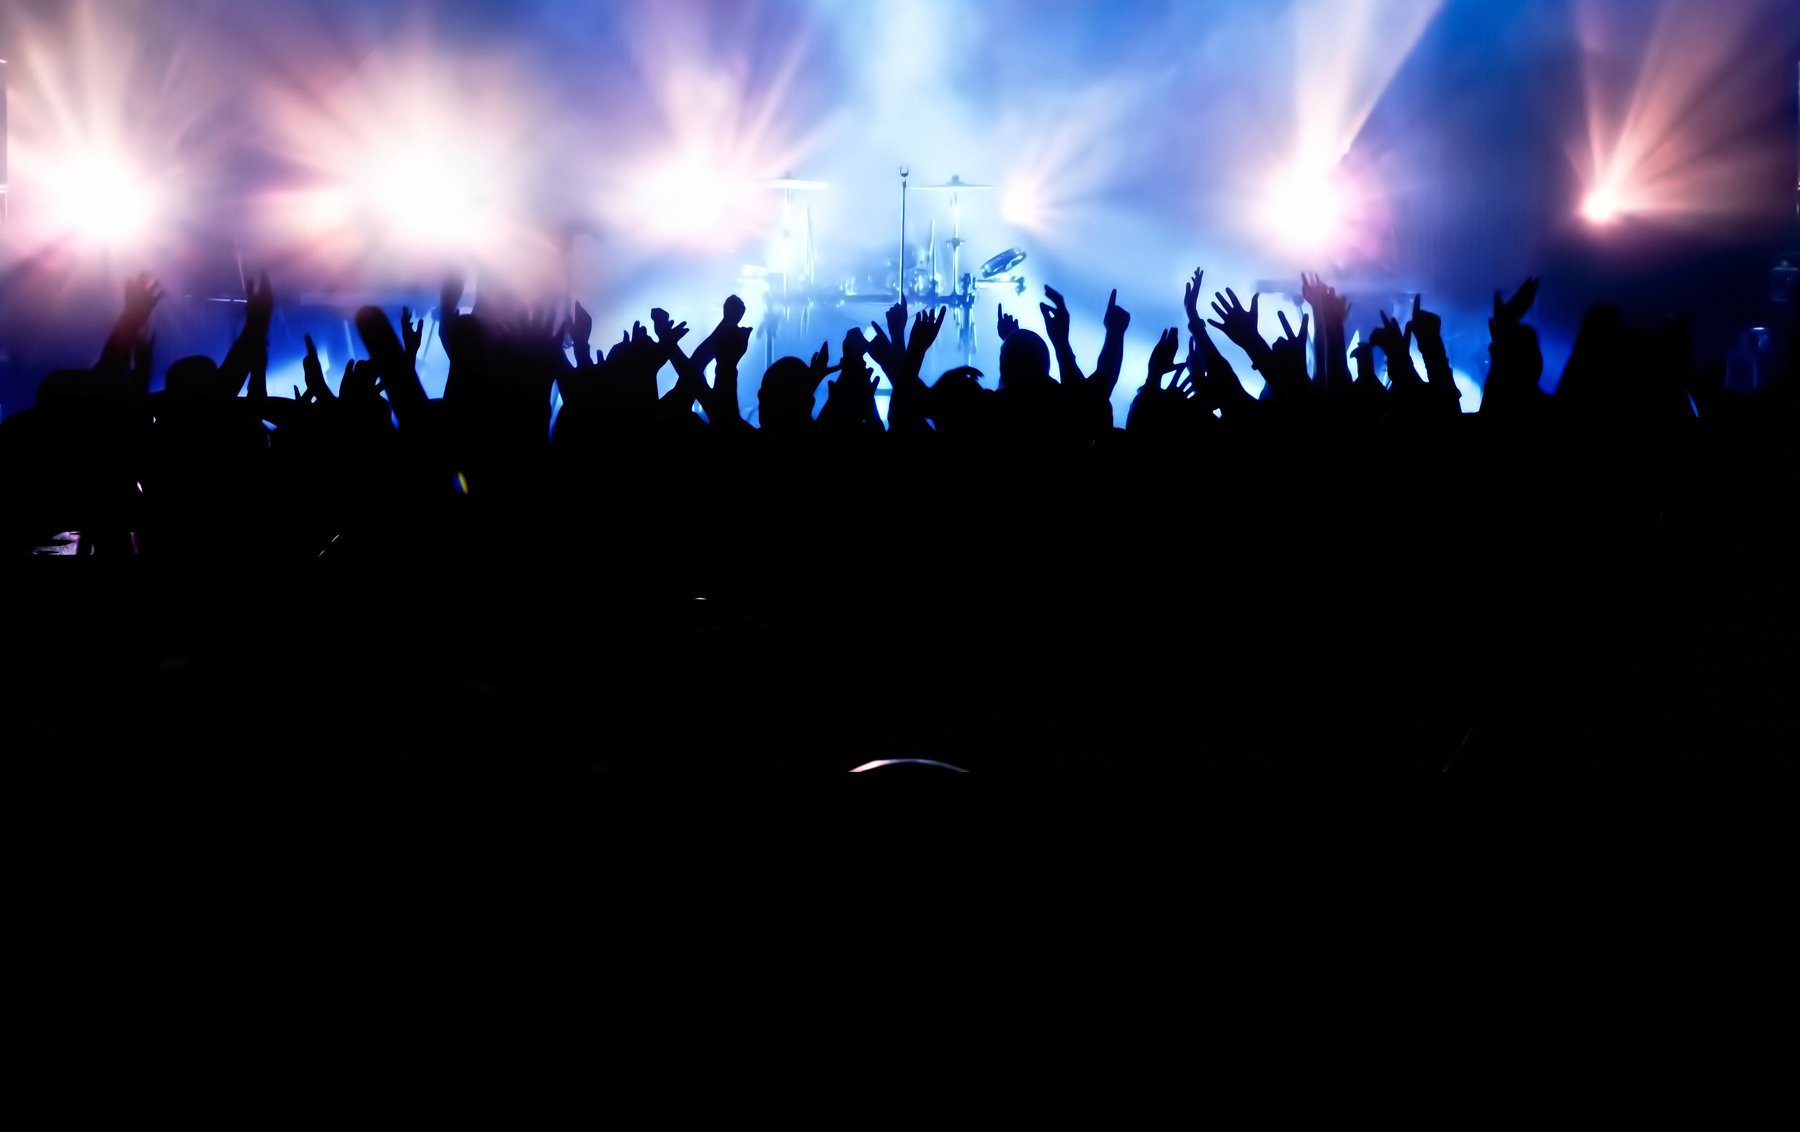 Concert Crowd | Free Best Hd Wallpapers